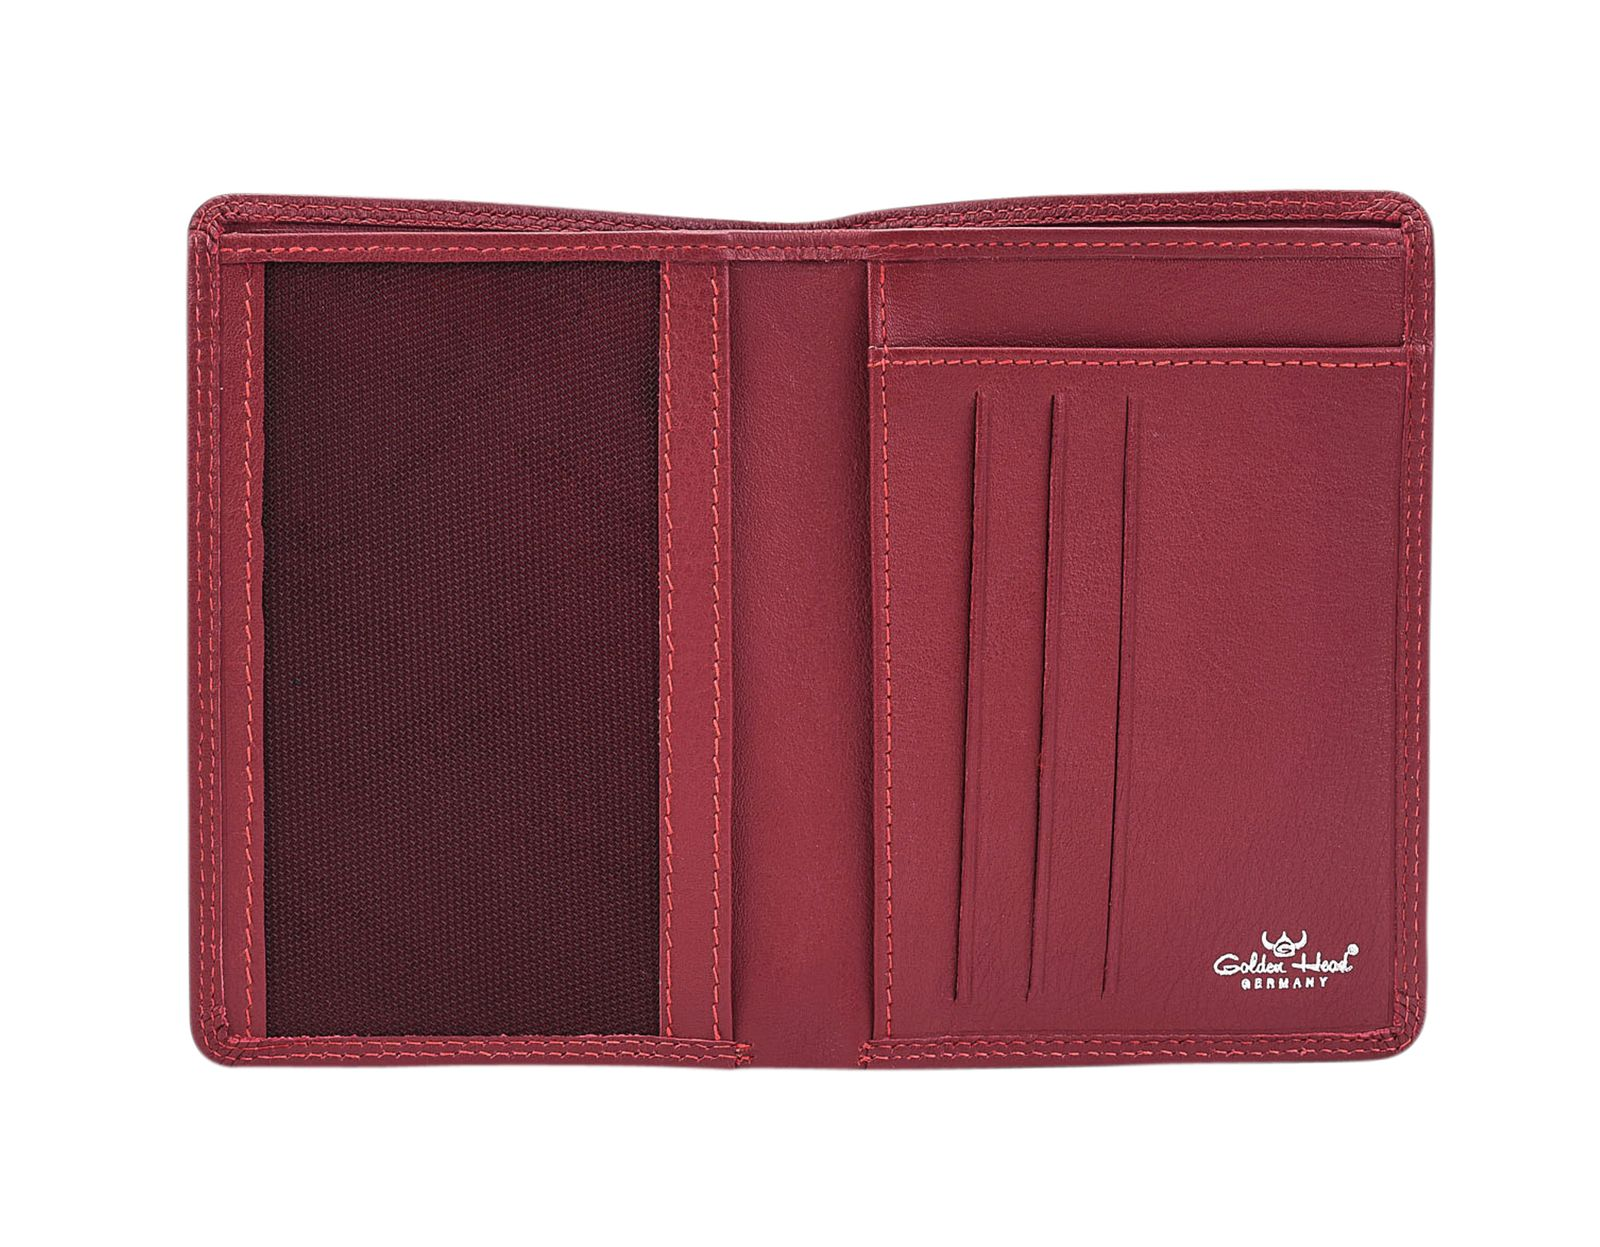 Golden Head Polo RFID Protect ID Wallet Red